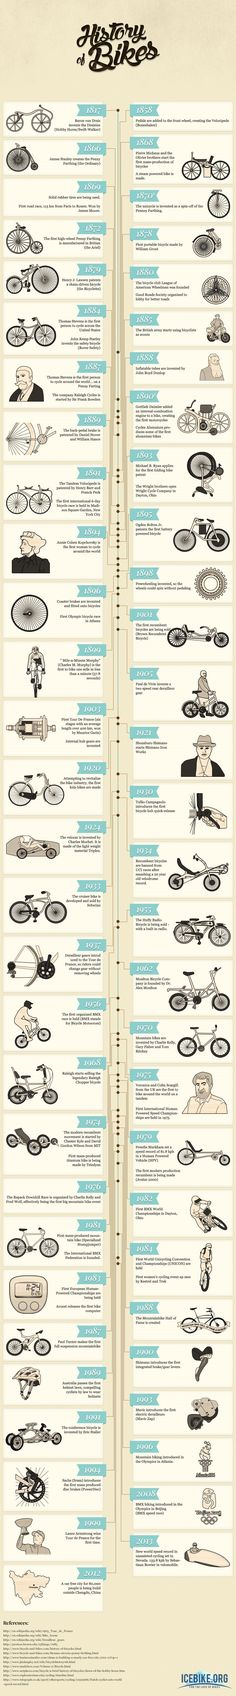 The History of Bikes #infographic ~ Visualistan